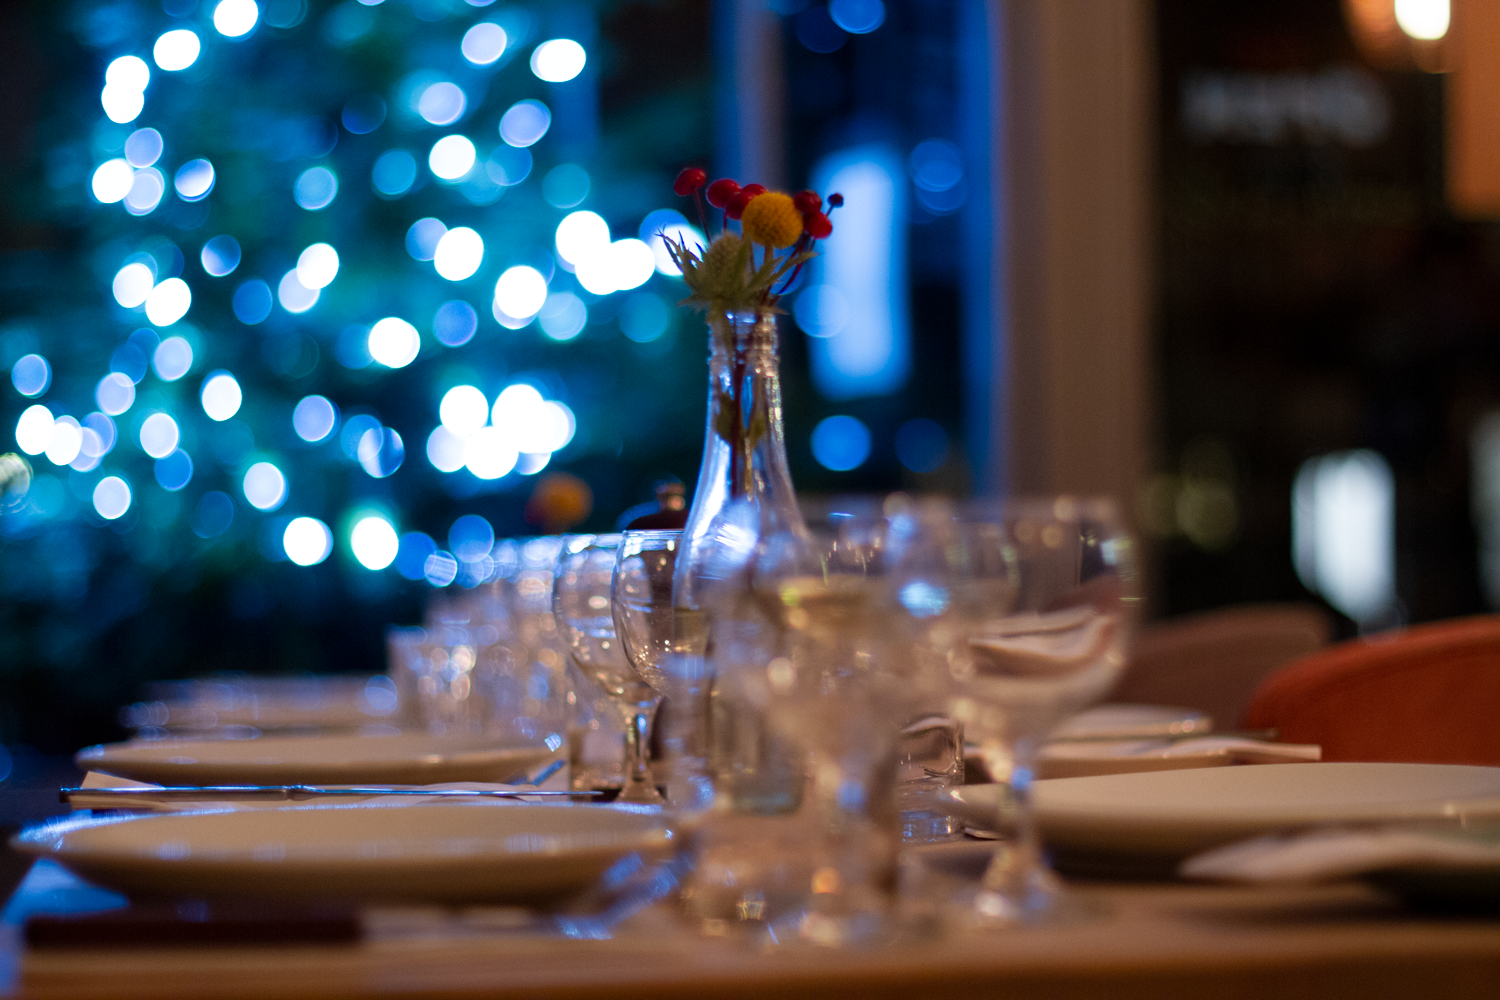 Christmas Parties - We are currently taking bookings for Christmas parties. For availabilities, please view the calendar.